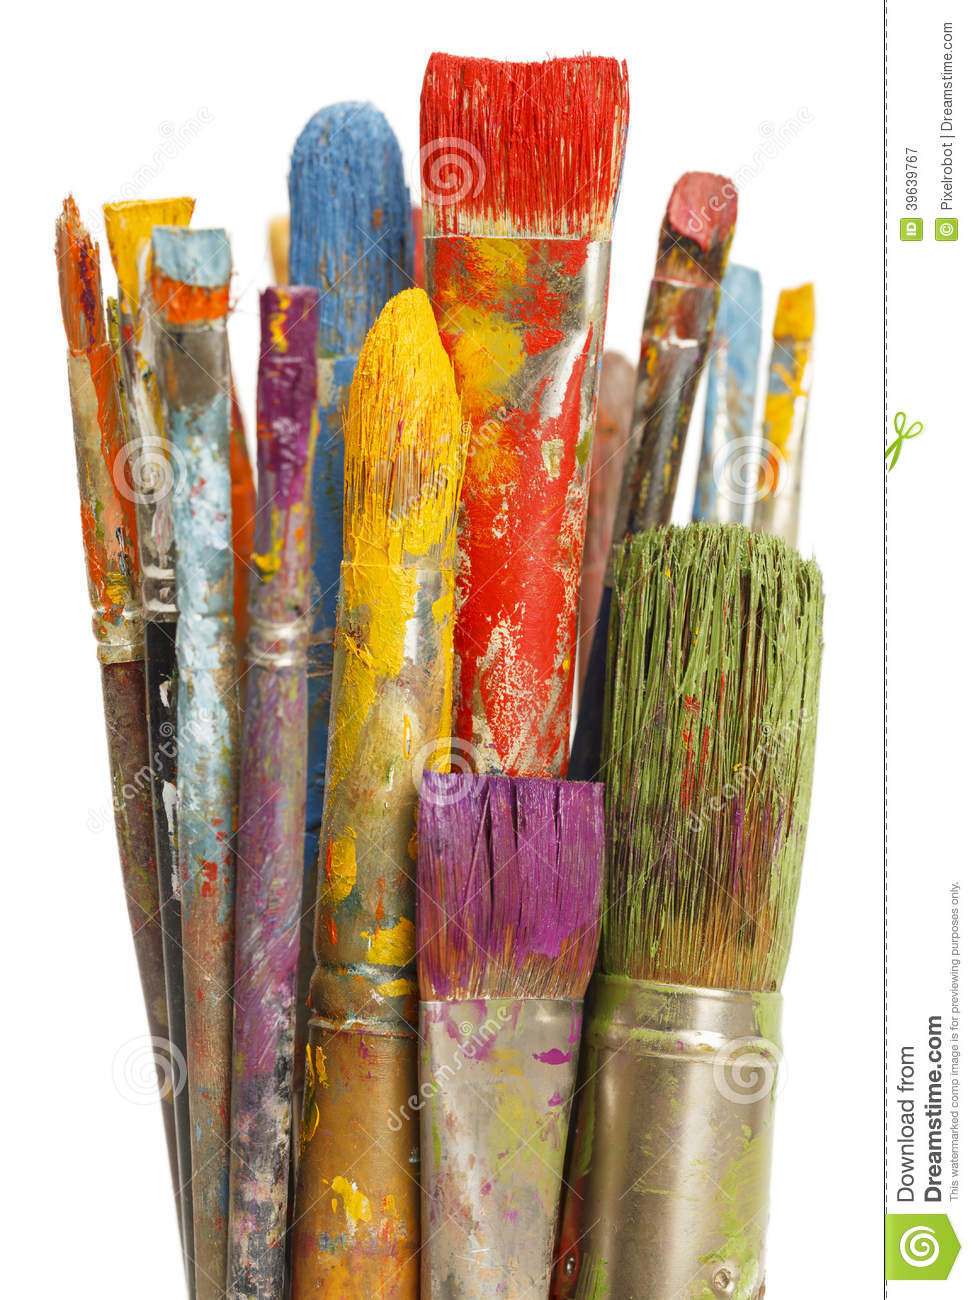 How To Clean Art Paint Brushes